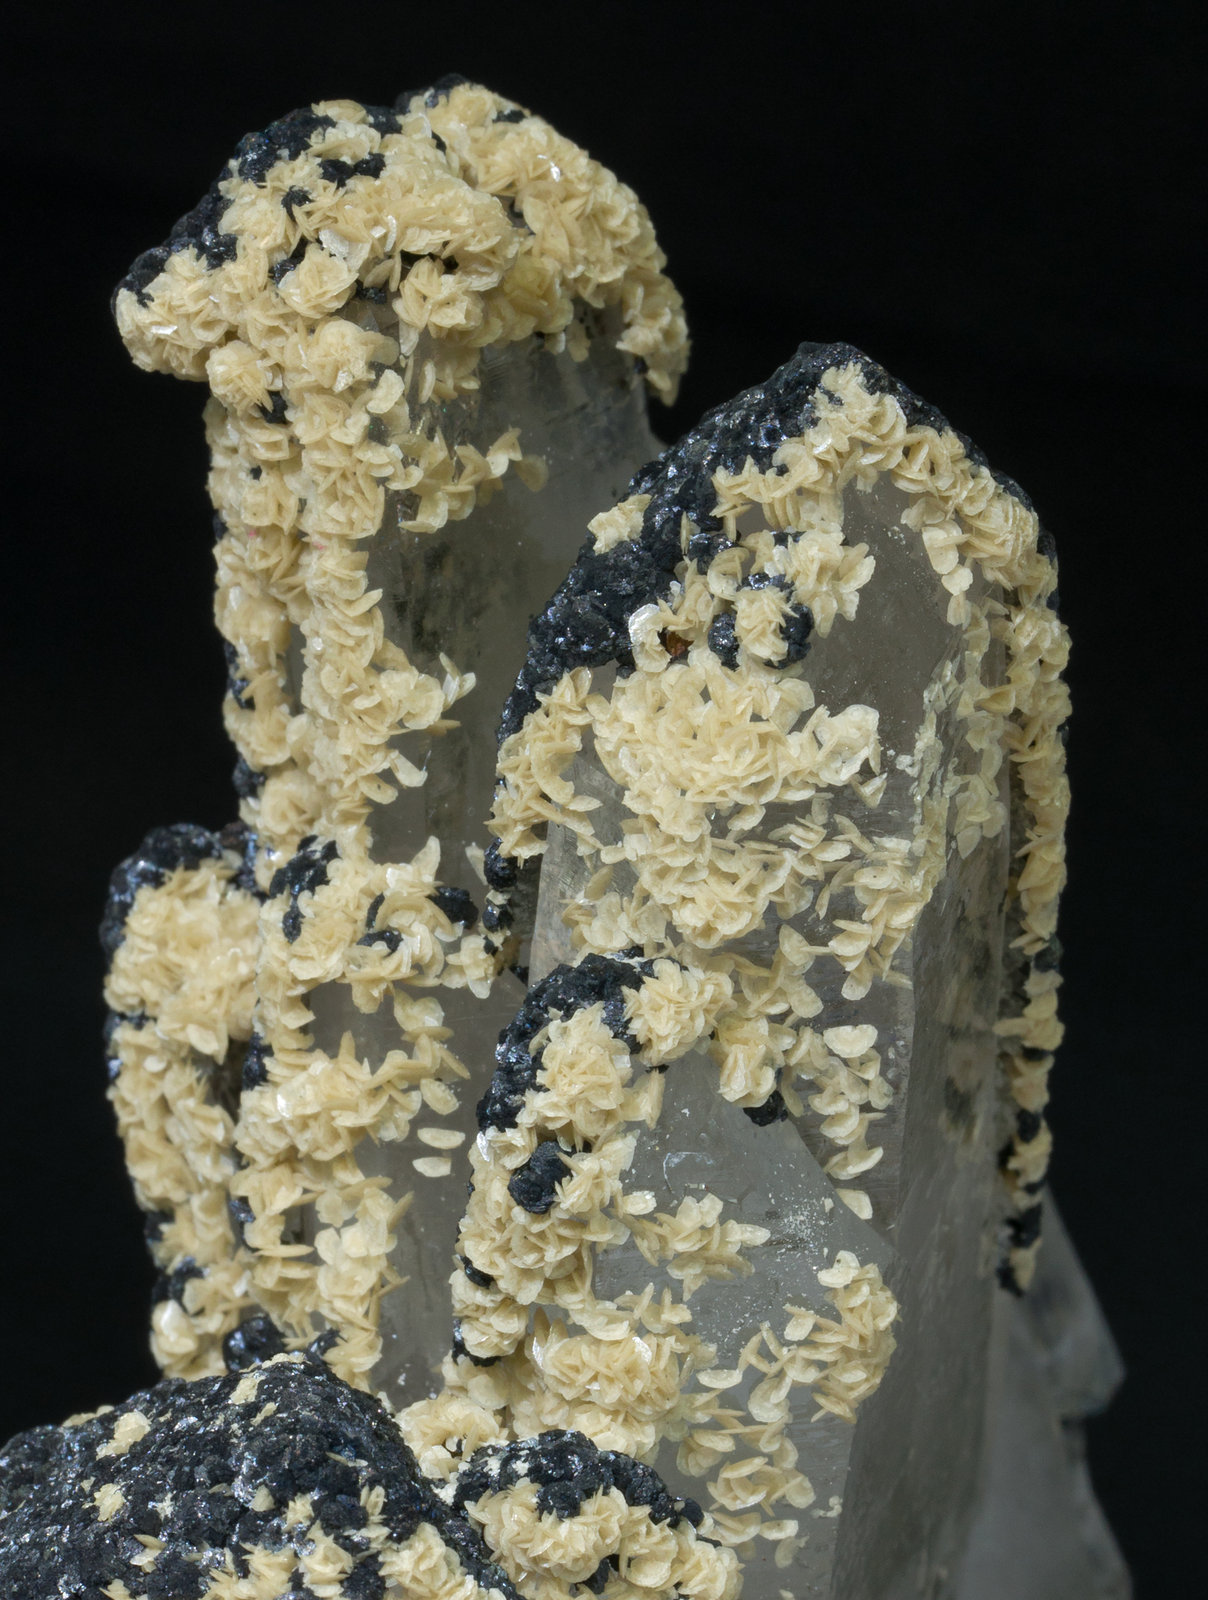 specimens/s_imagesZ4/Quartz-N17PQZ4d.jpg